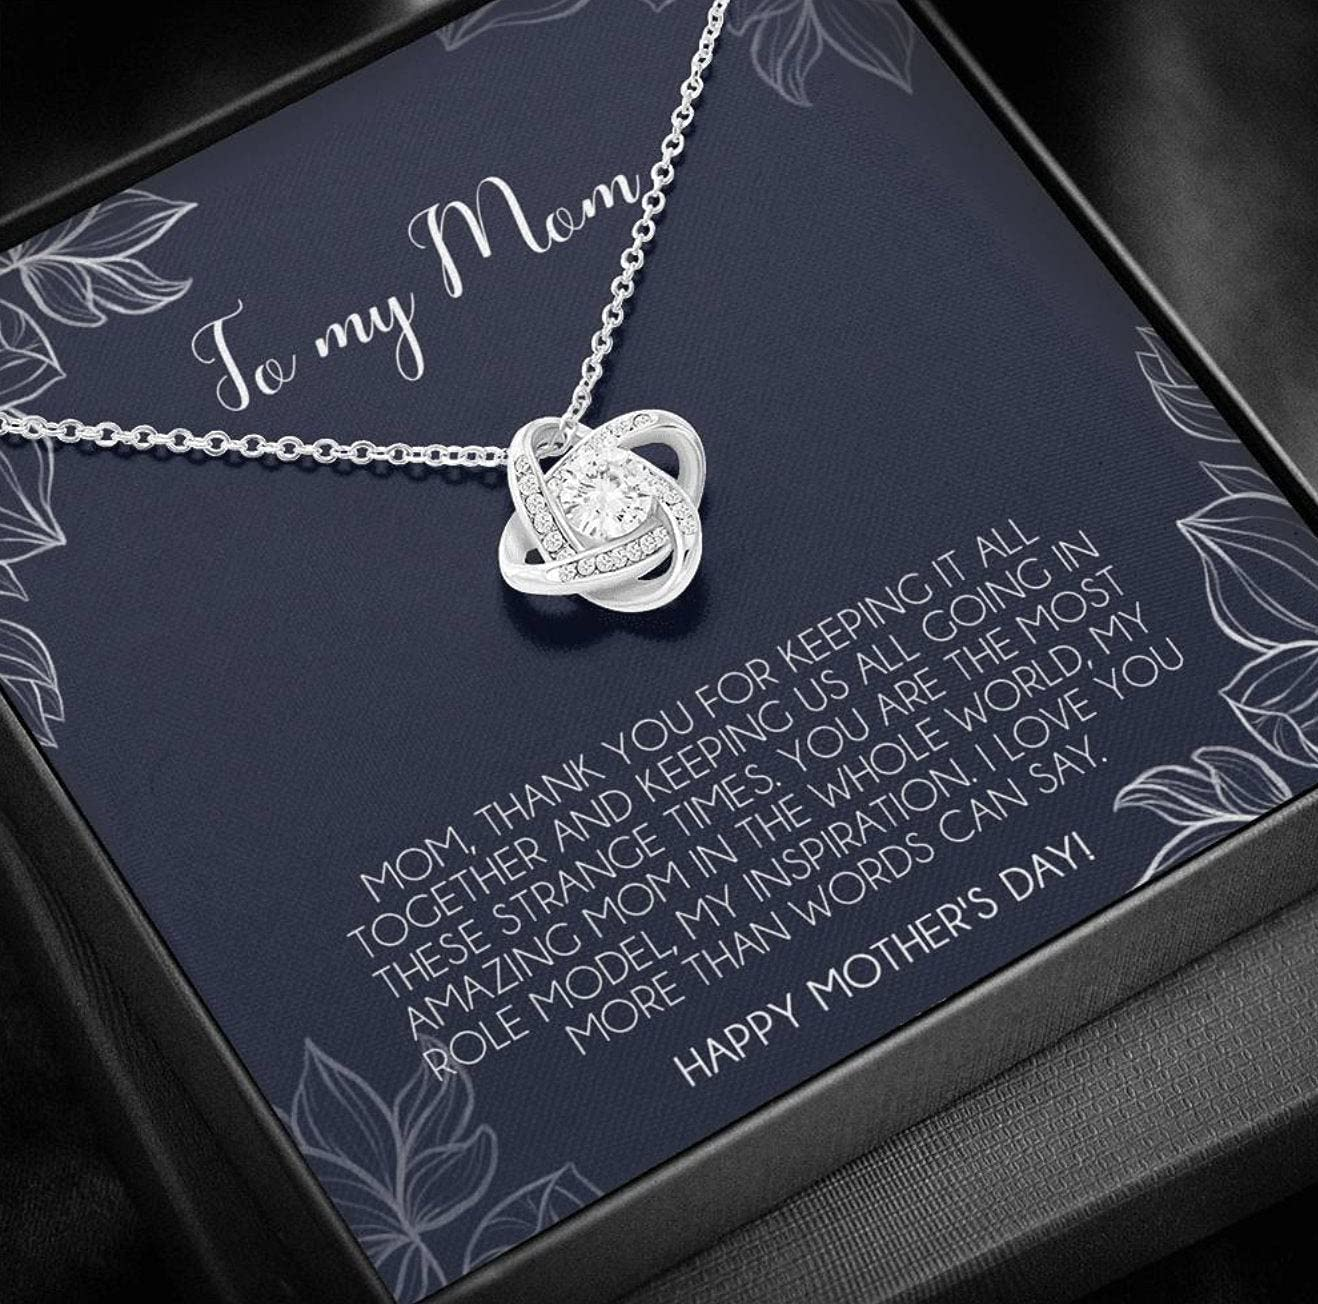 Personalized Jewelry Gift - Forever Love Necklace, Quarantine Mother's Day Gift From Son, Love Knot Necklace, Quarantine Mothers Day Gift From Daughter, Long Distance Mom Gift From Son